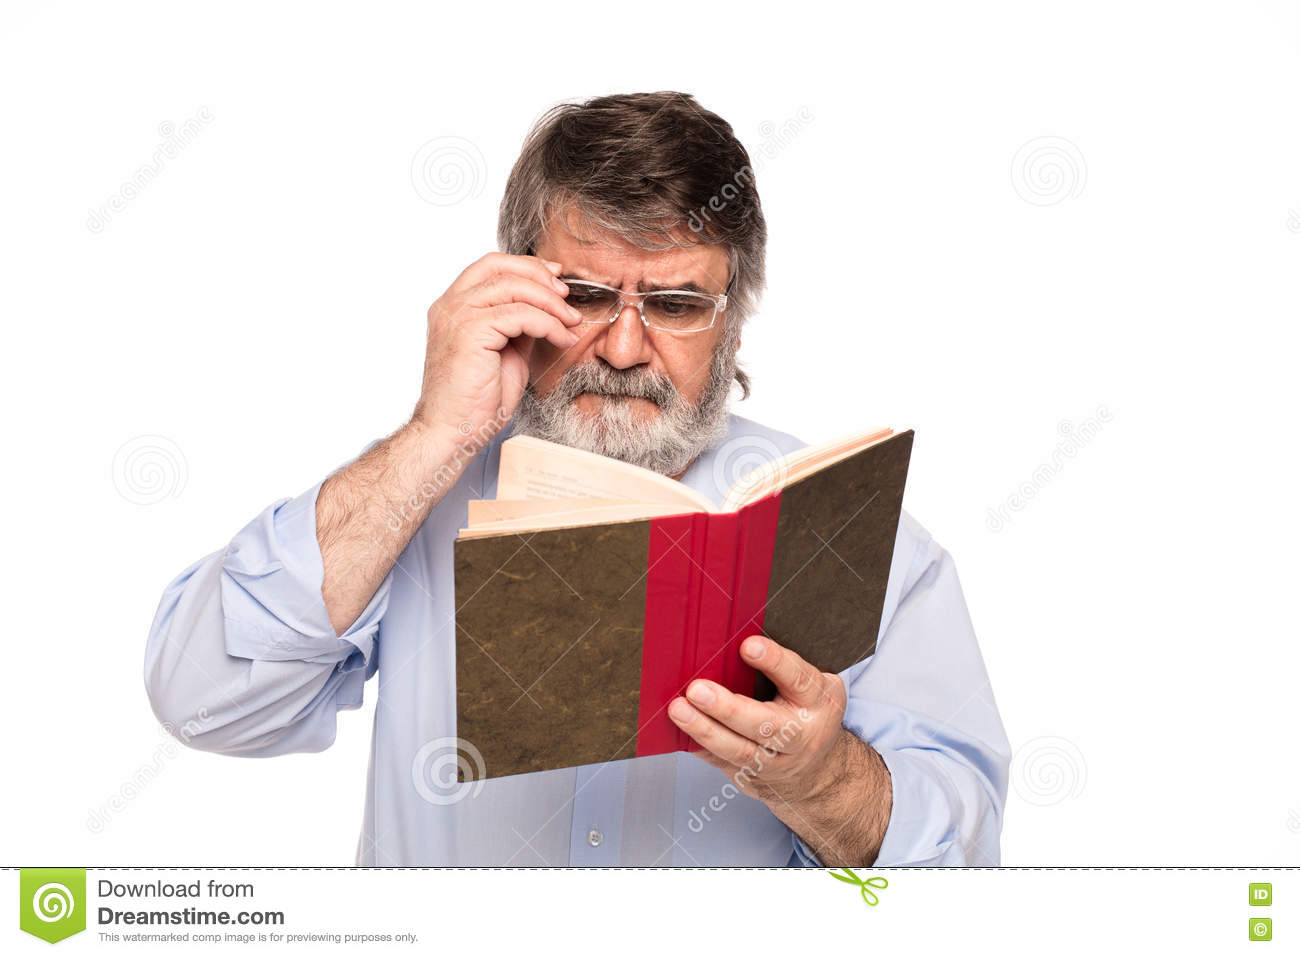 Old Man With Glasses Reading A Book Stock Image - Image of information,  gray: 71442157